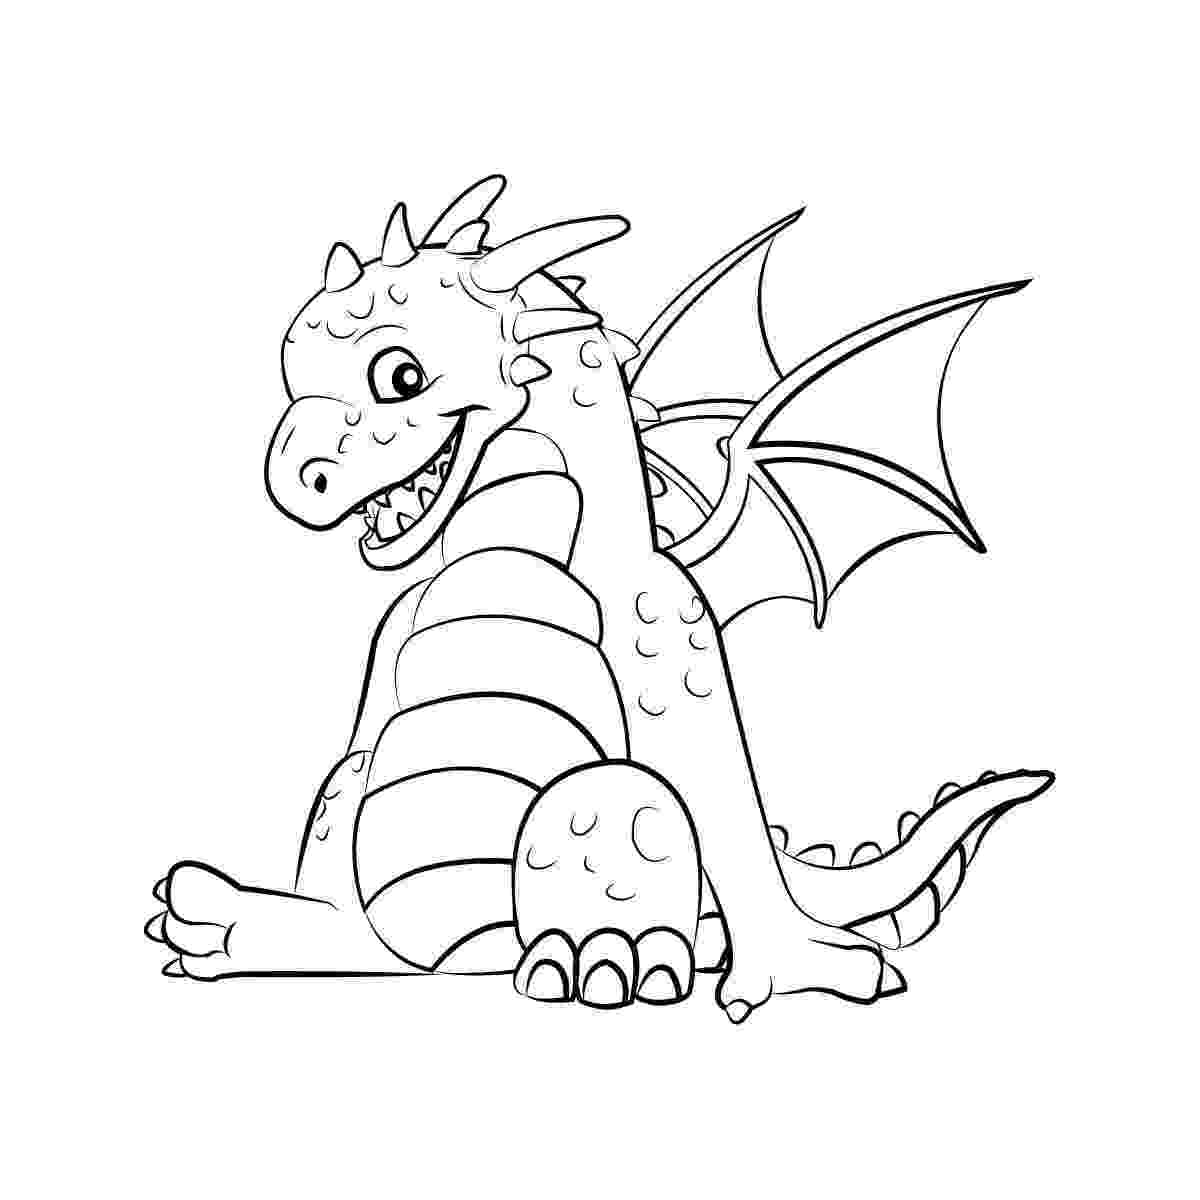 dragon coloring pages monster brains the official advanced dungeons and dragons dragon coloring pages